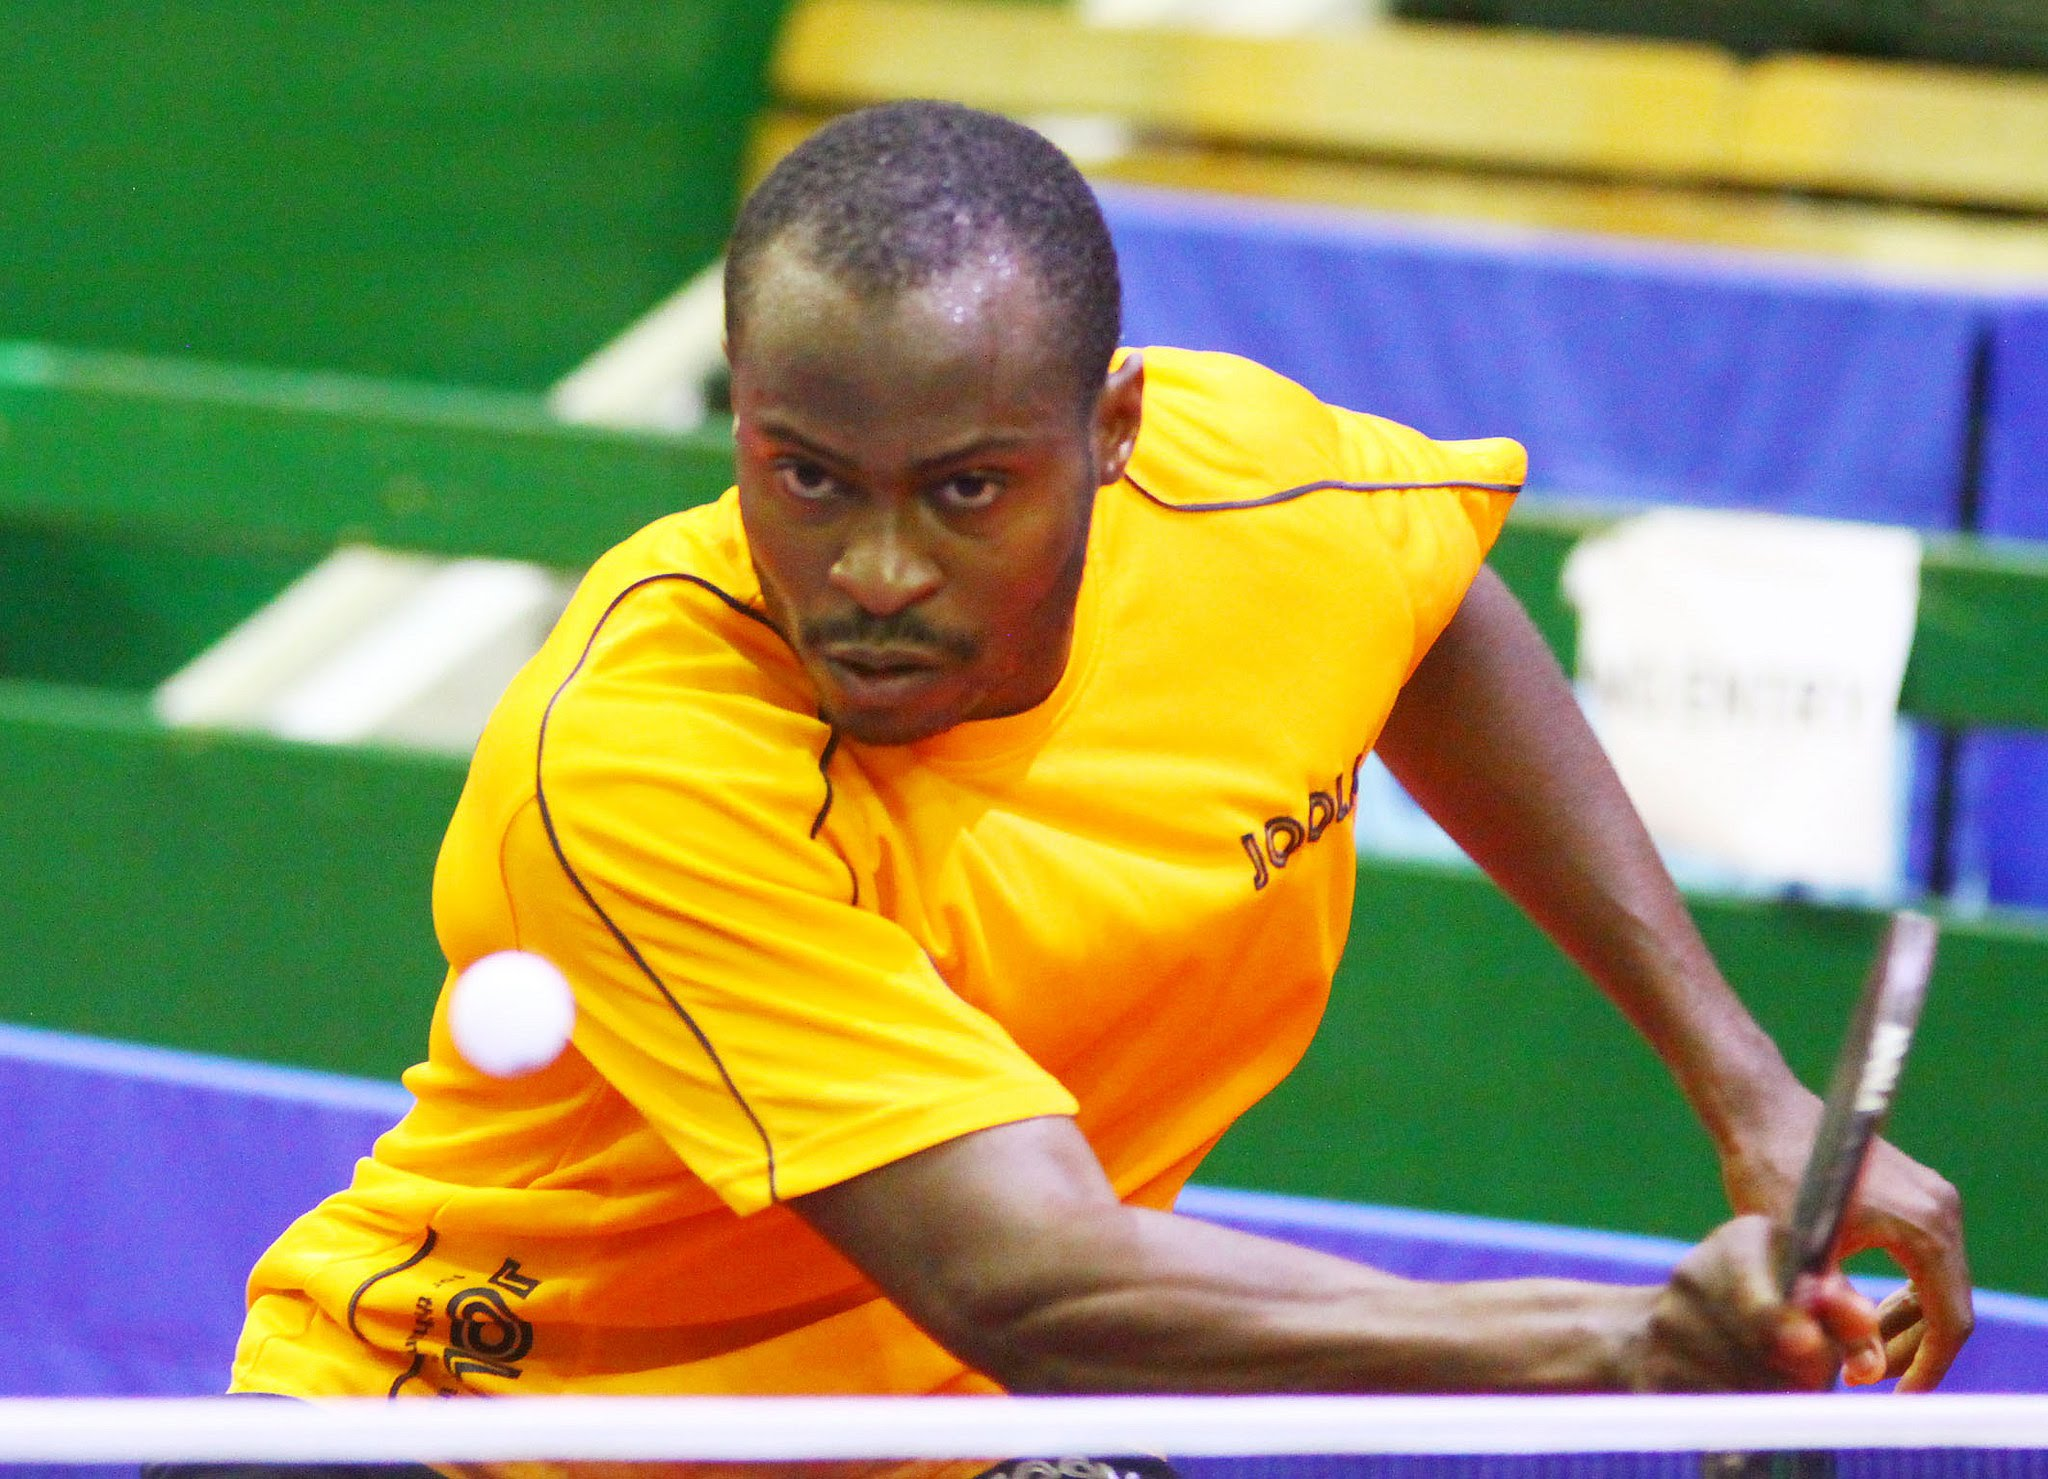 Ittf set 46k prize money for lagos open complete sports - African table tennis federation ...